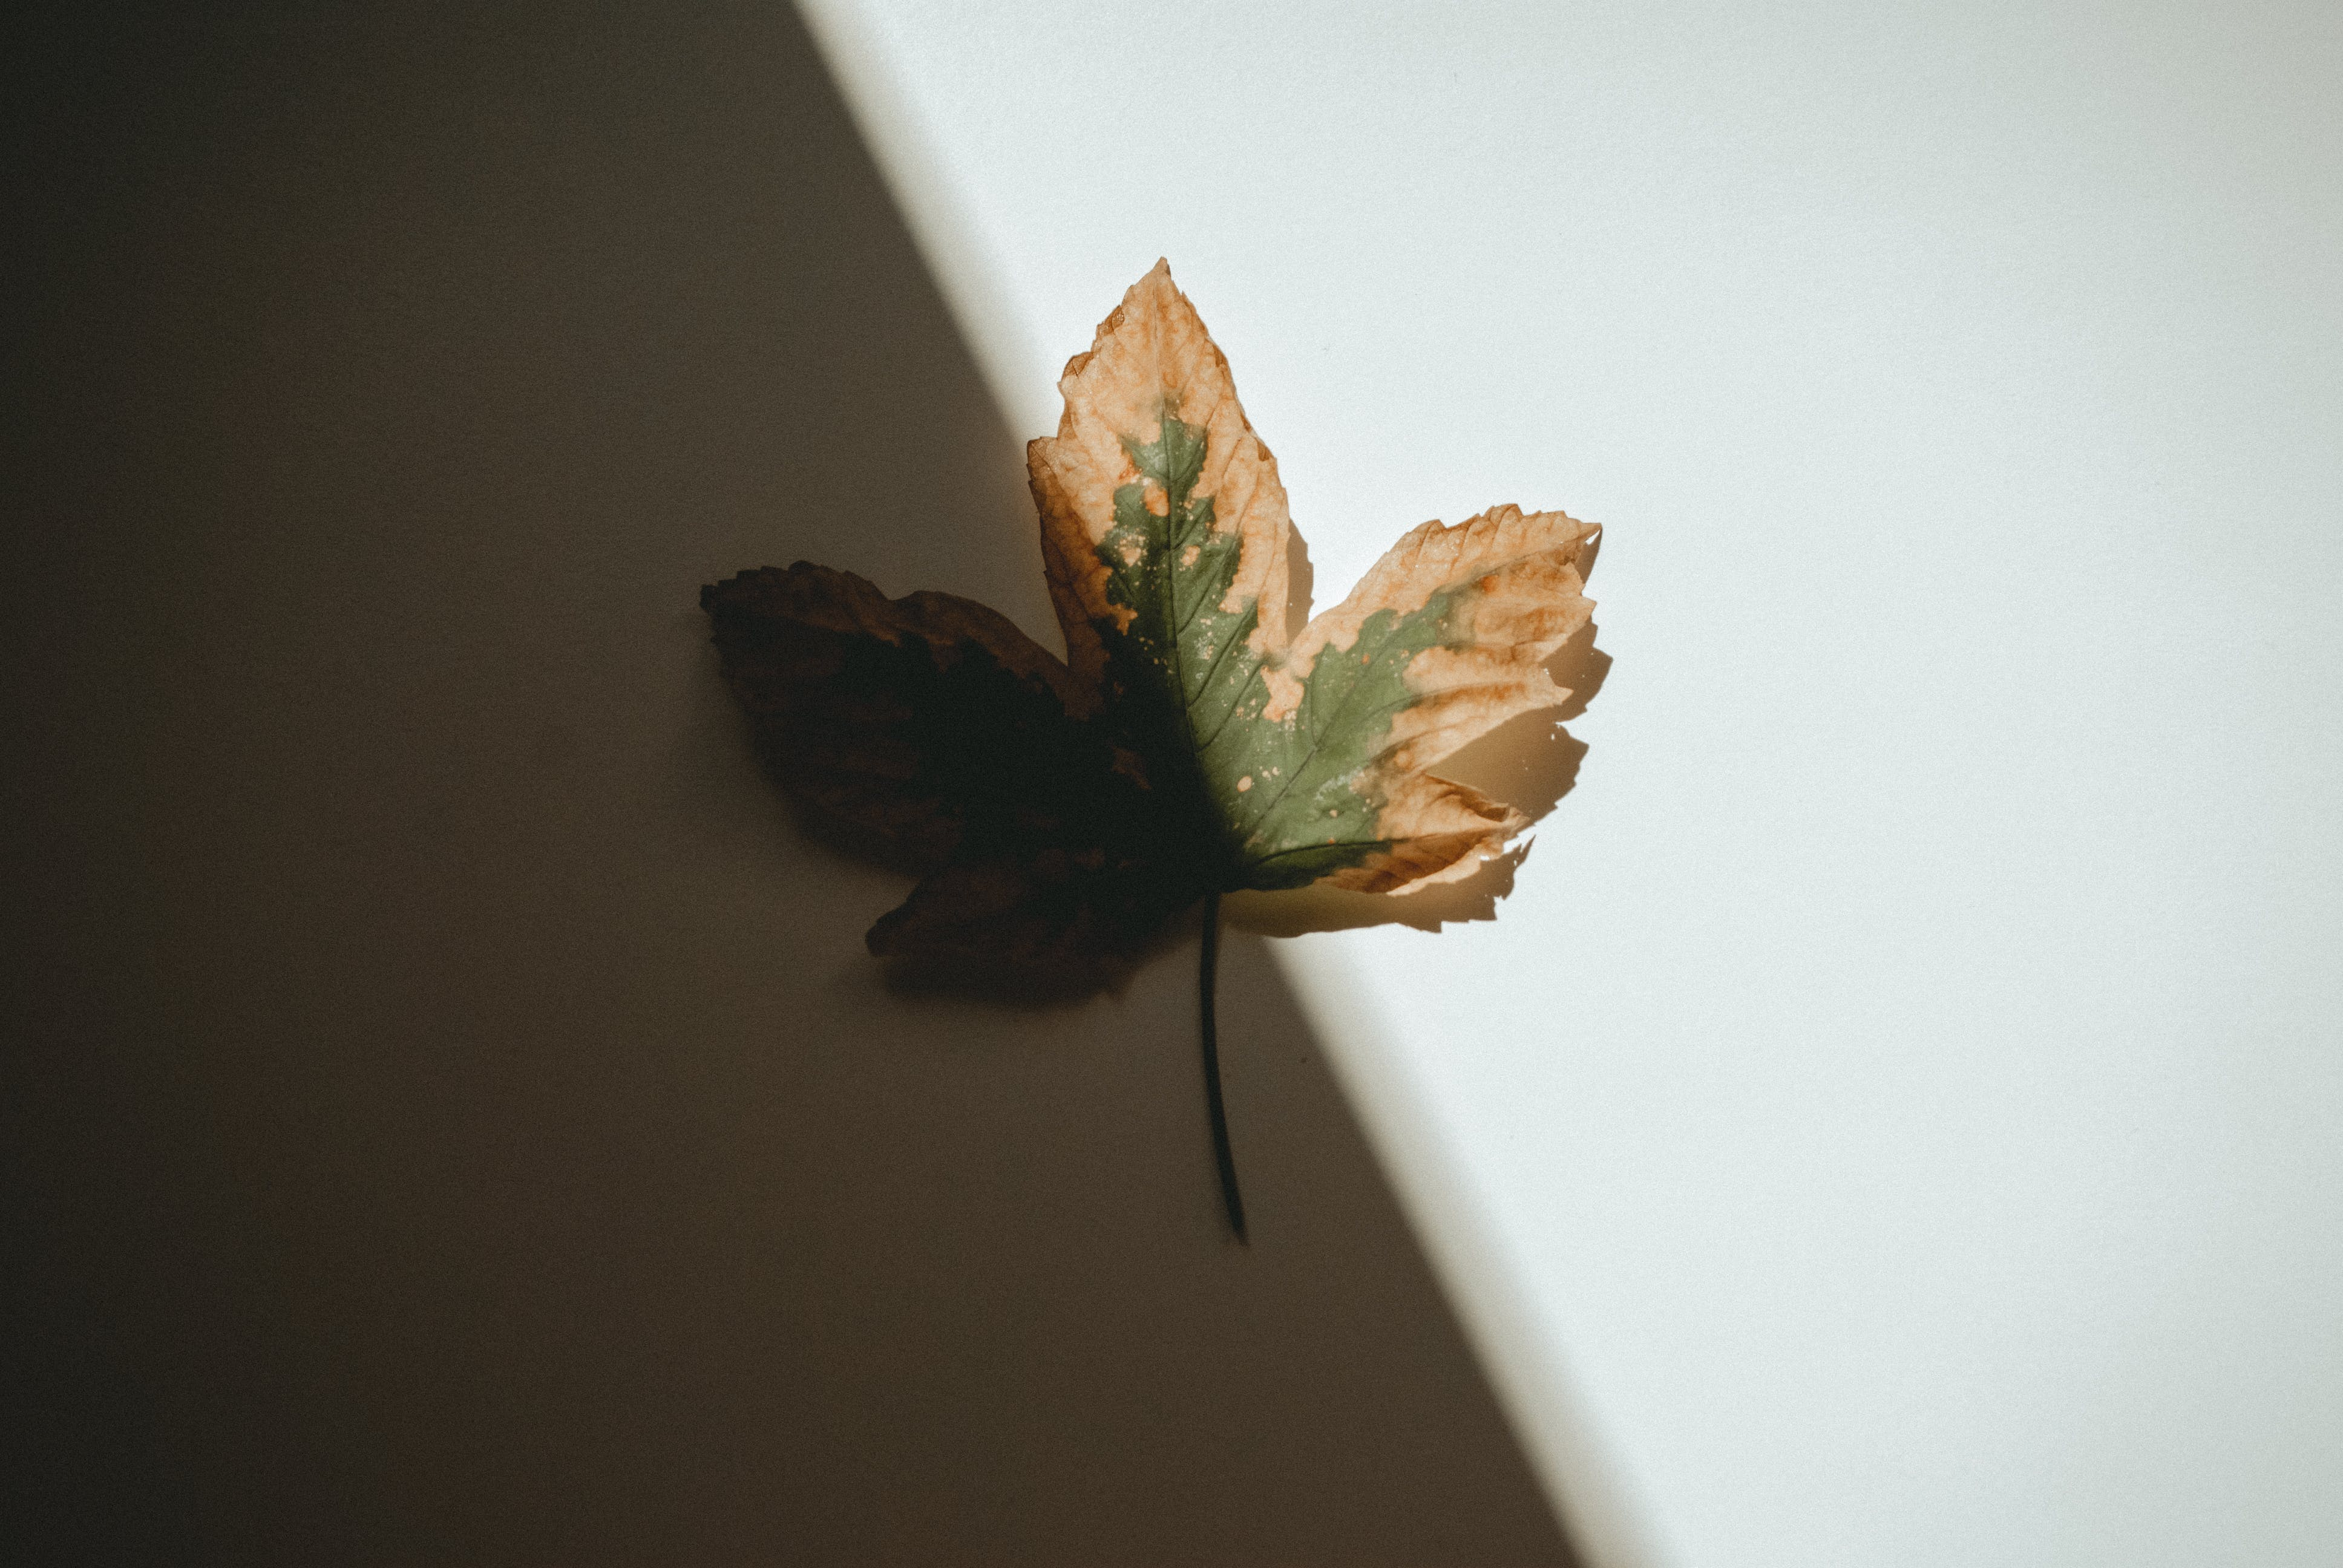 Close-Up Photography of Maple Leaf